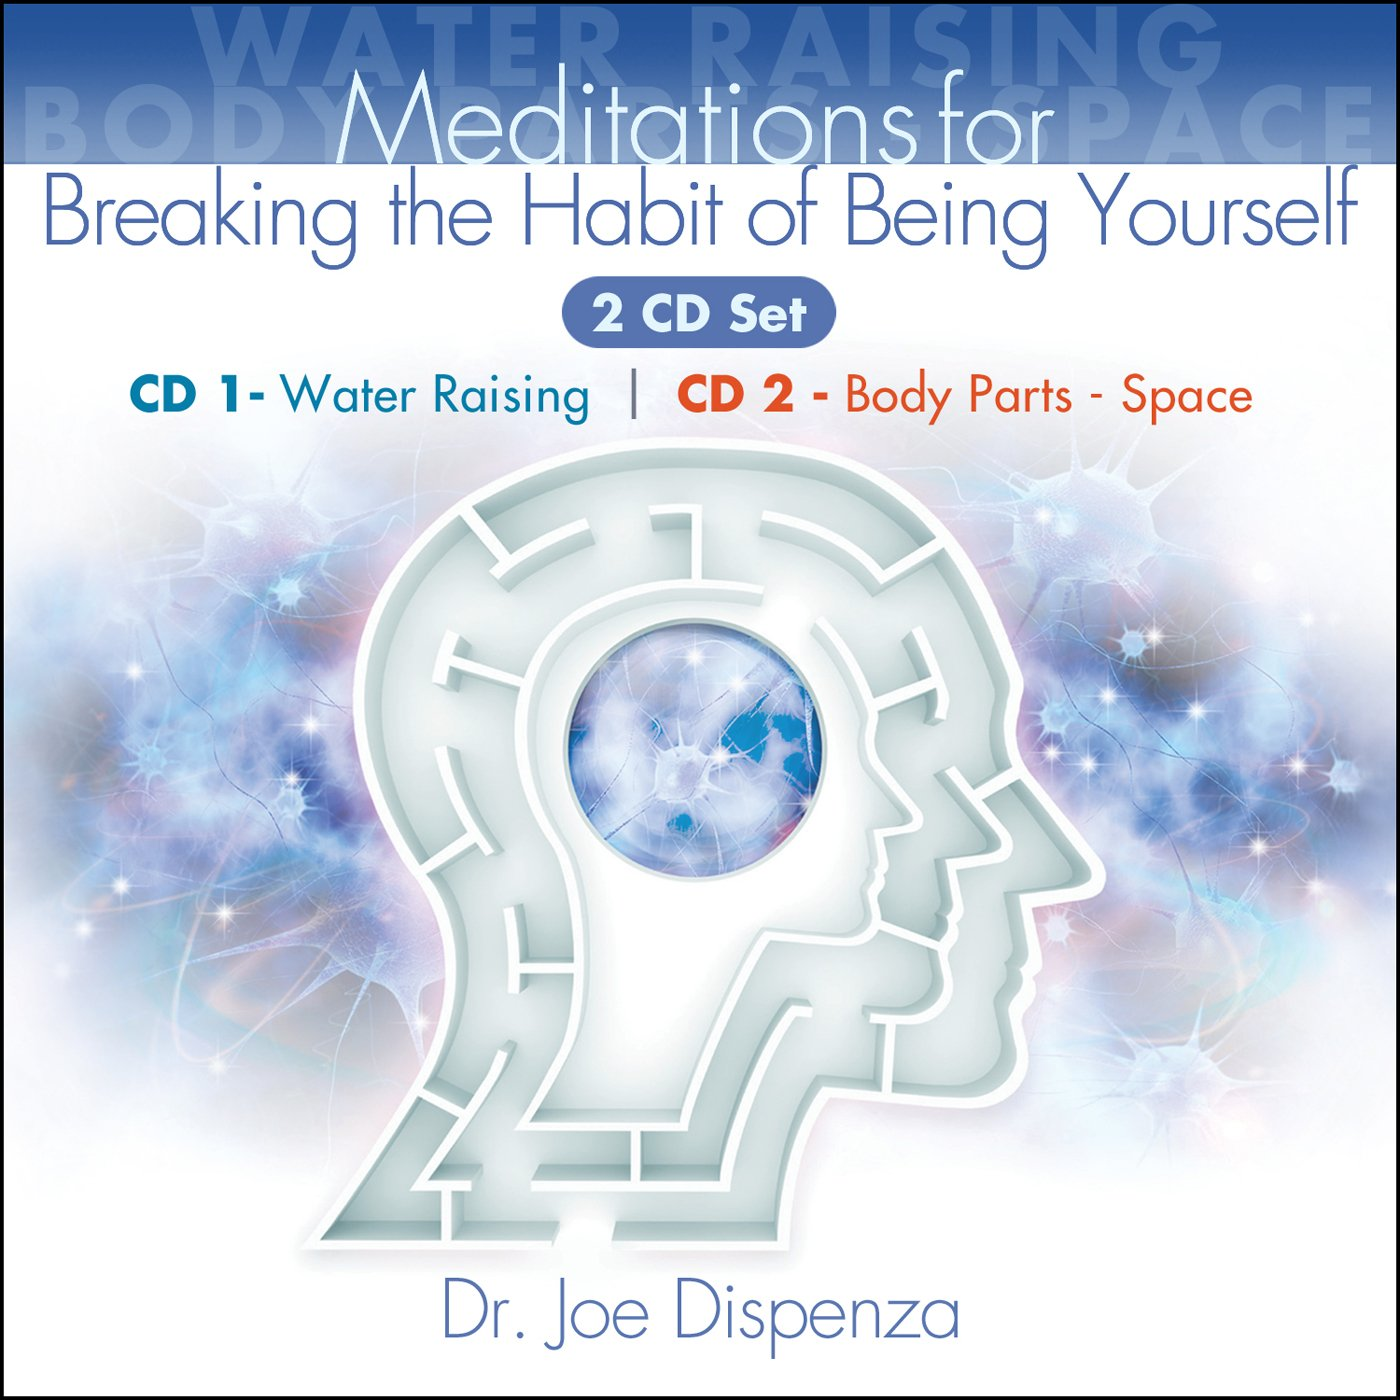 Breaking the Habit of Being Yourself Book Companion Meditations by Encephalon, LLC